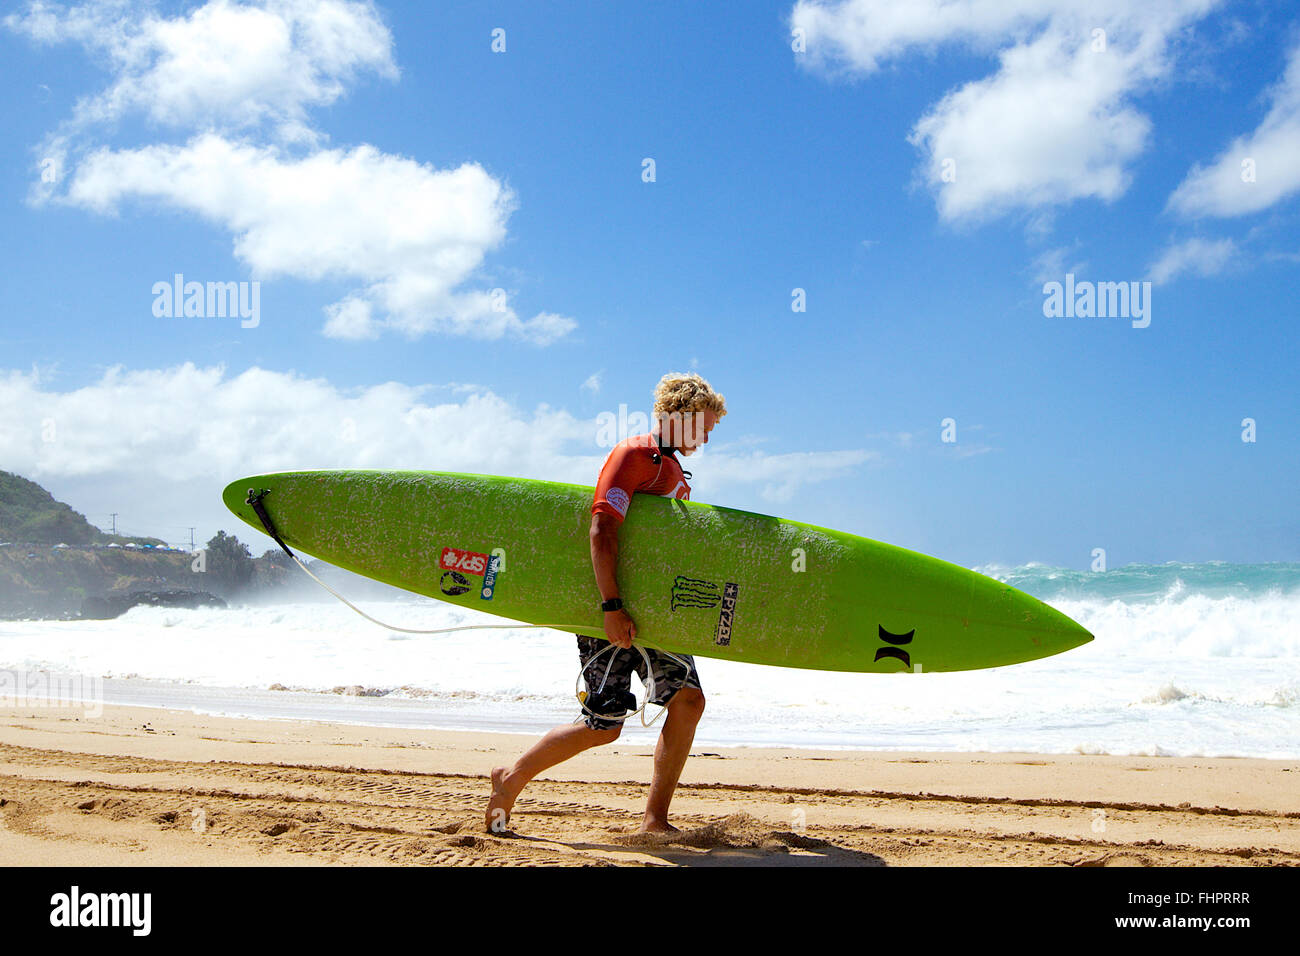 Haleiwa, Hawaii, USA. 25th February, 2016. February 25, 2016 - John Florence gets ready for his heat during the - Stock Image